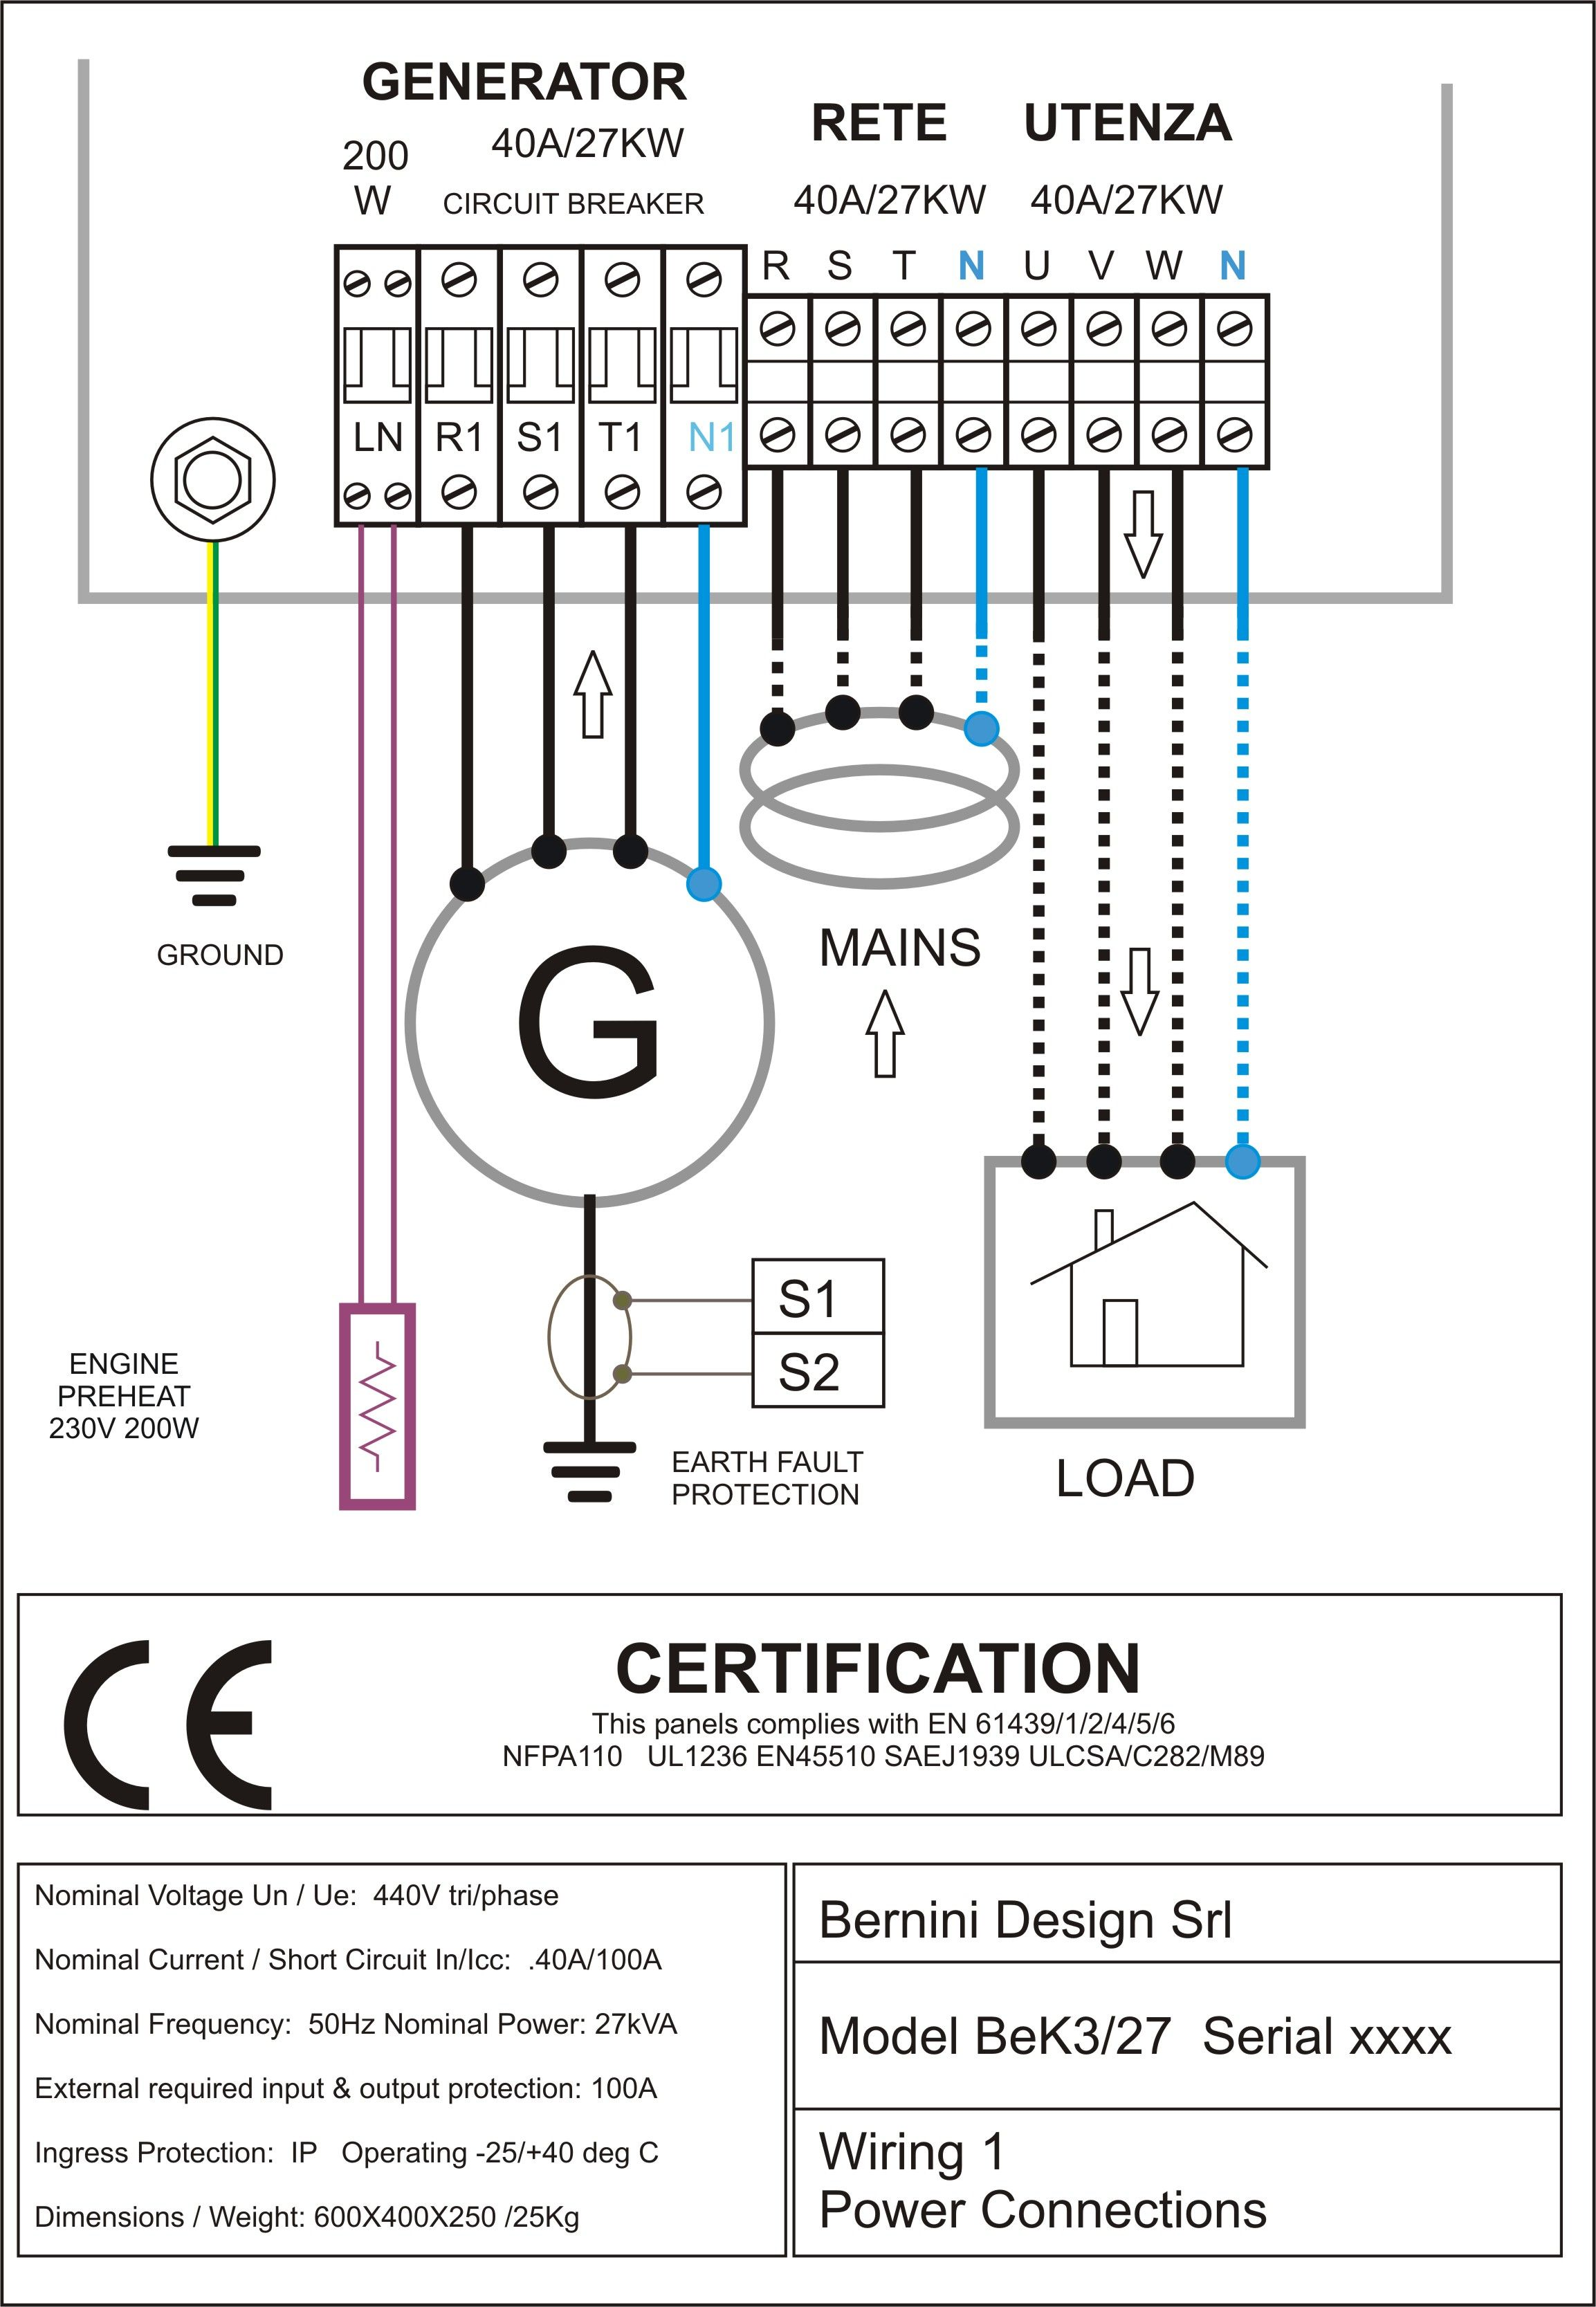 diesel generator control panel wiring diagram ac connectionsdiesel generator control panel wiring diagram ac connections [ 2307 x 3335 Pixel ]